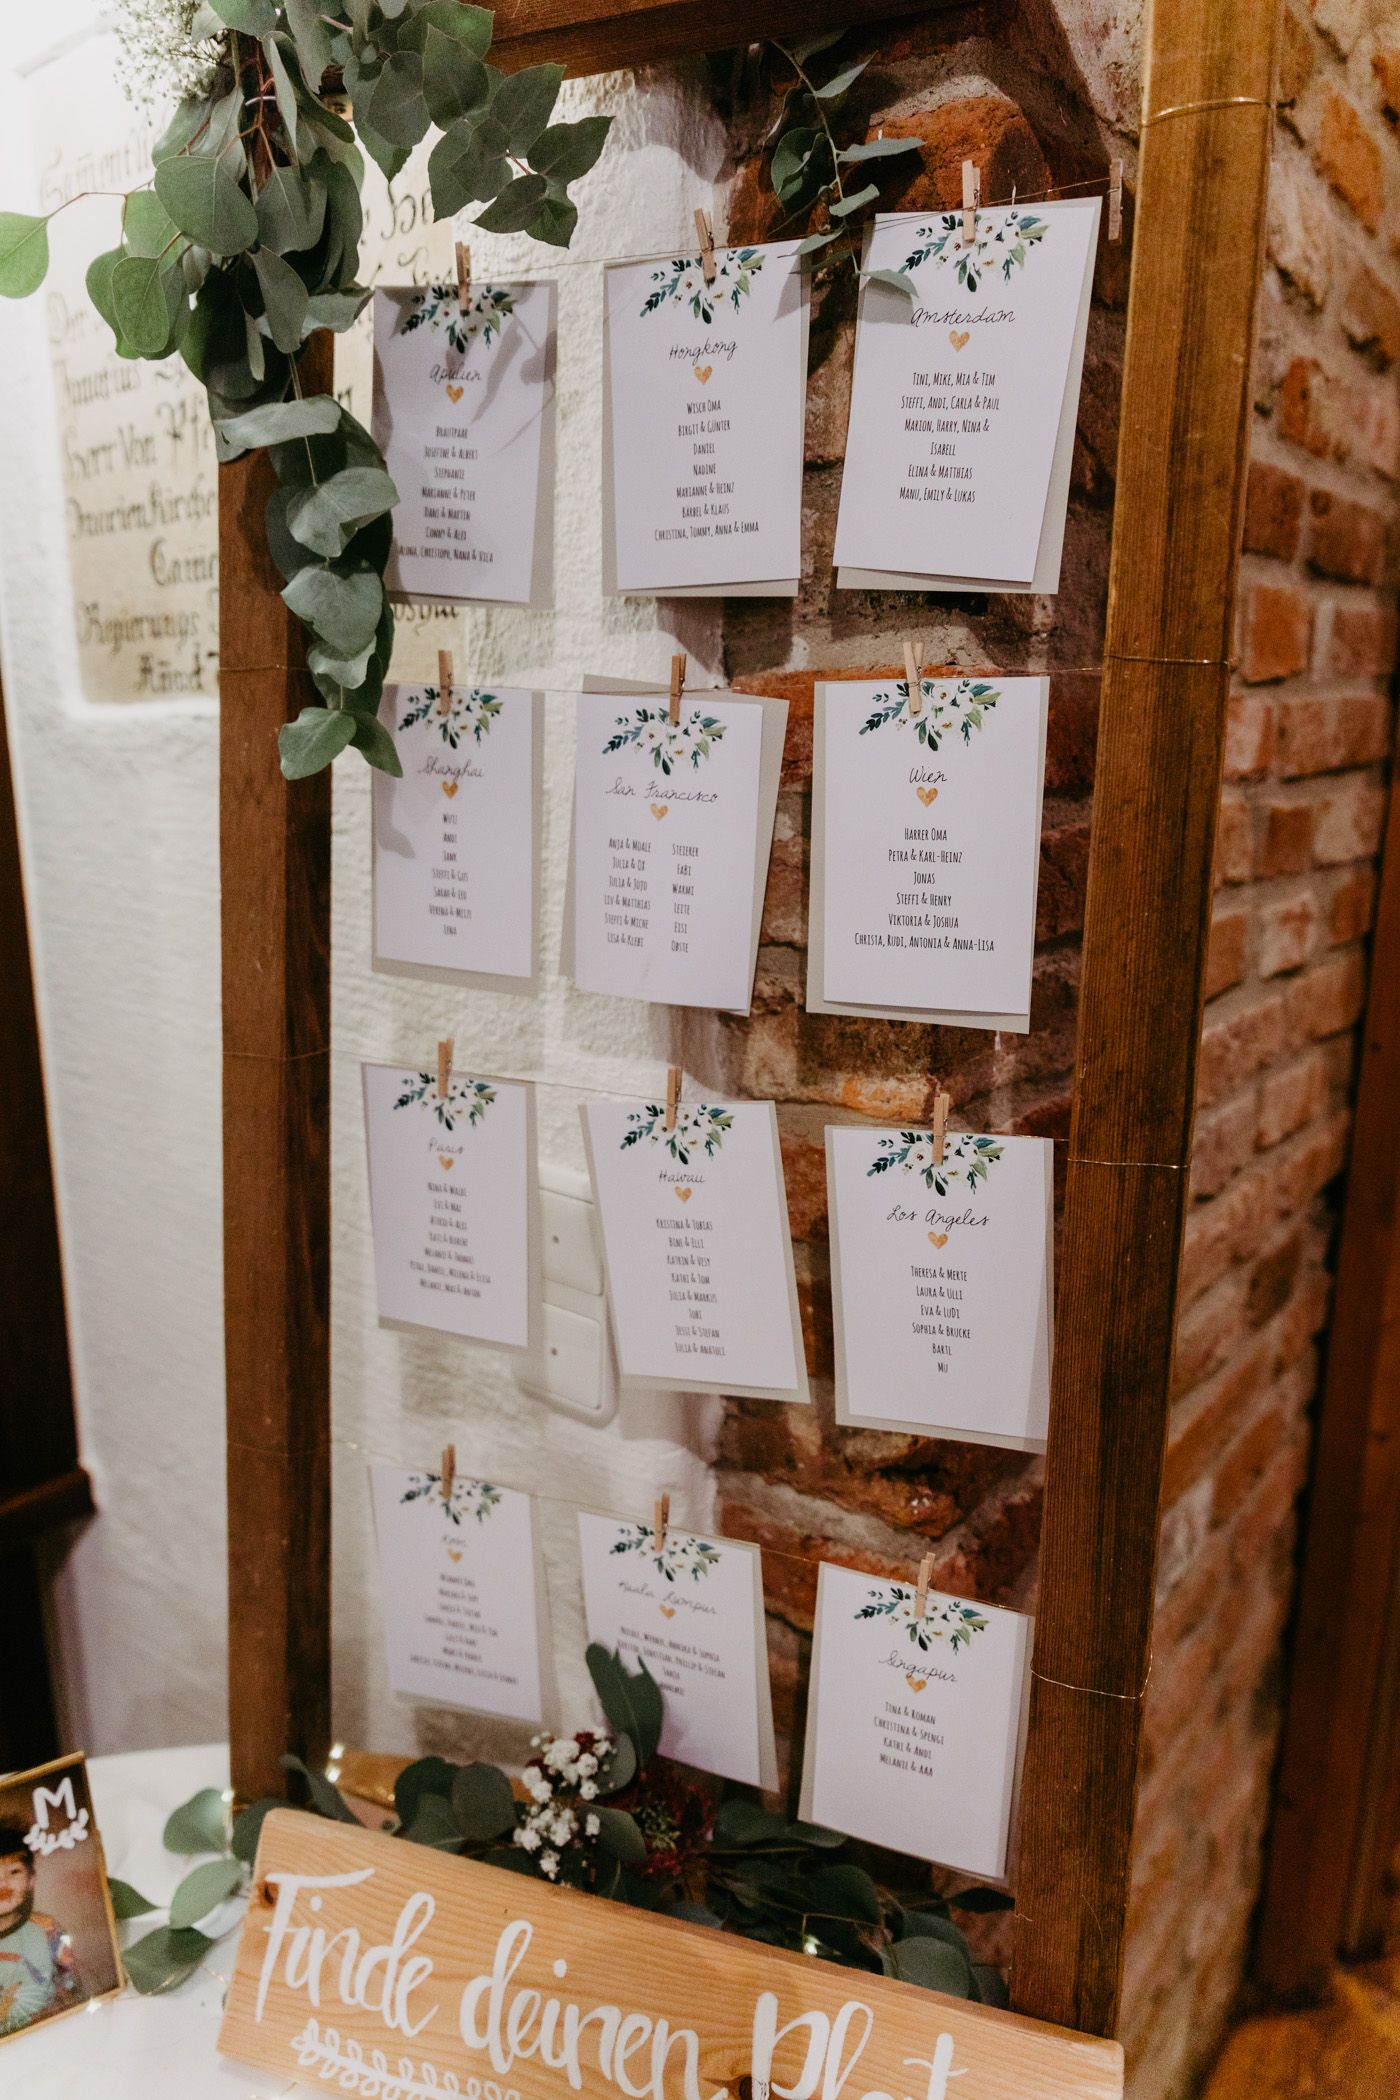 Una boda de otoño en el campo |  Blog de bodas The Little Wedding Corner  – Boda